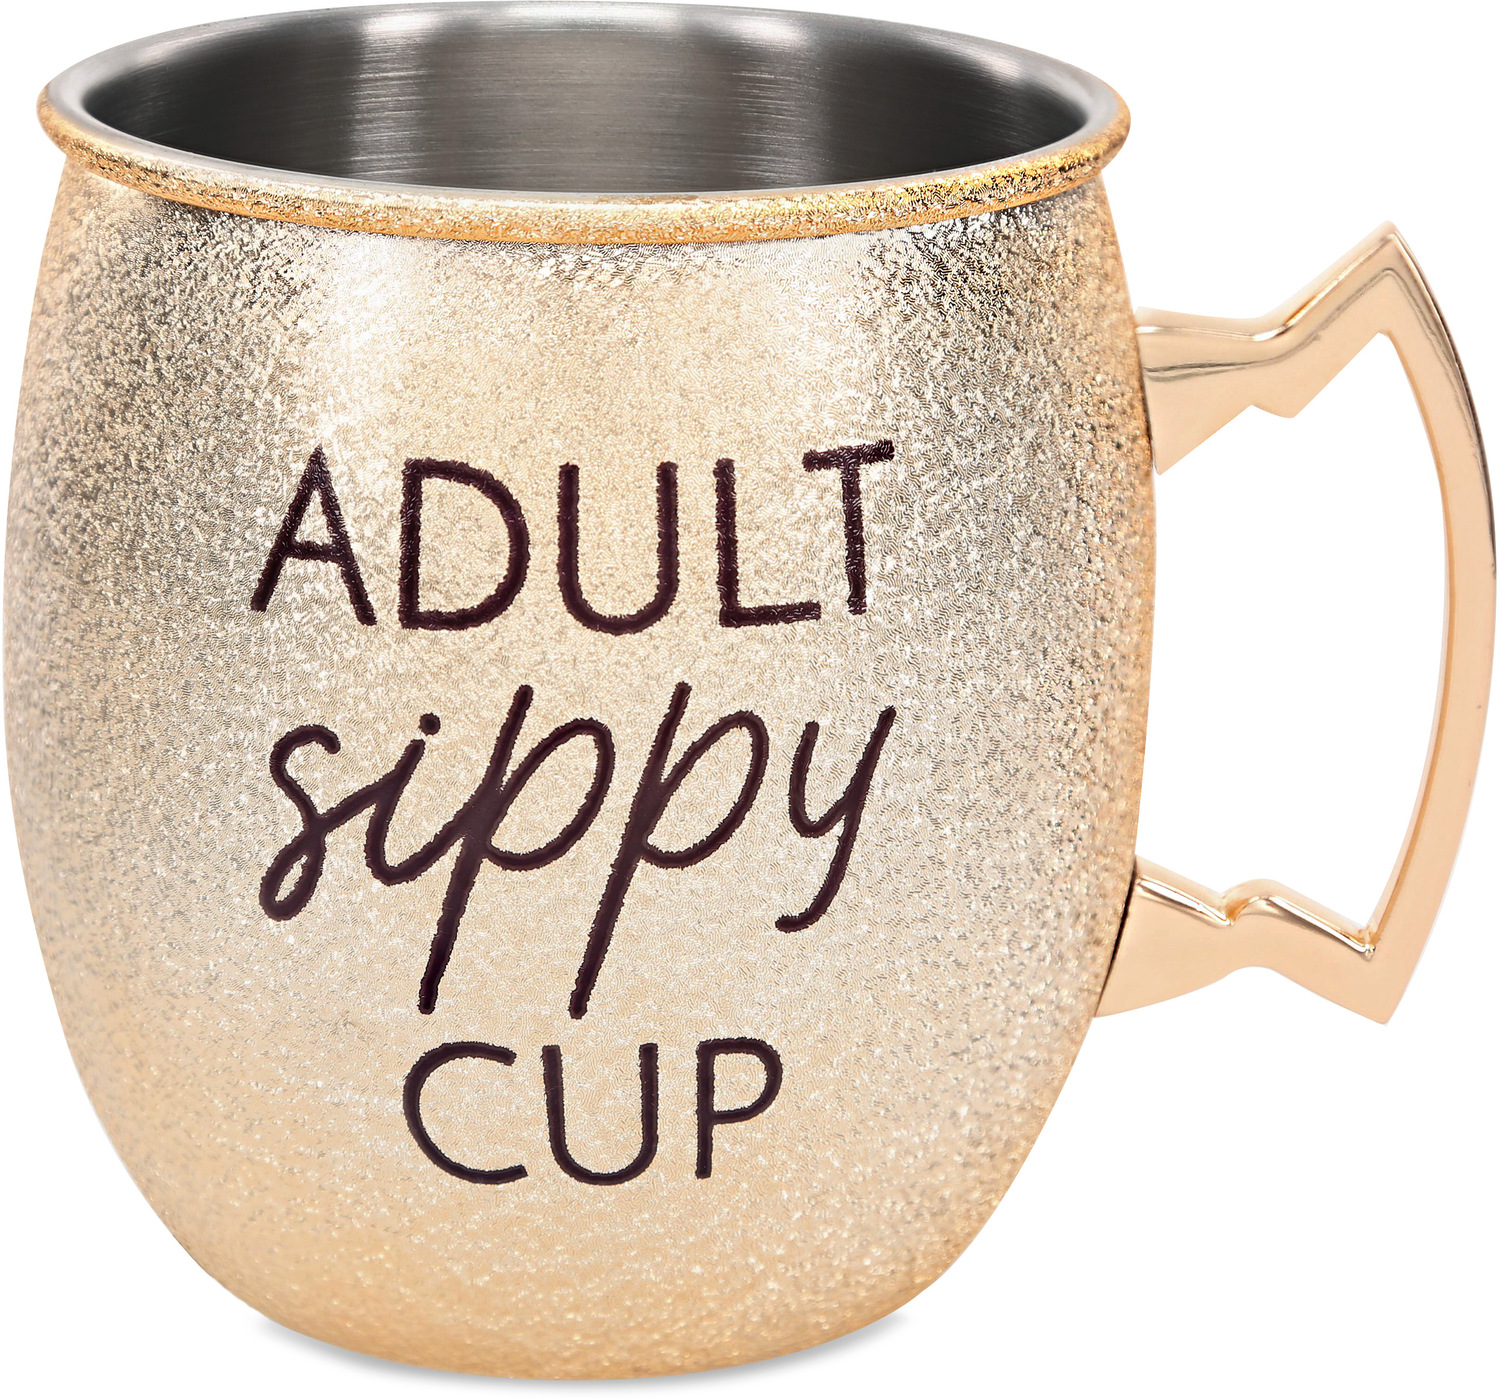 Sippy Cup by My Kinda Girl - Sippy Cup - 20 oz Stainless Steel Moscow Mule